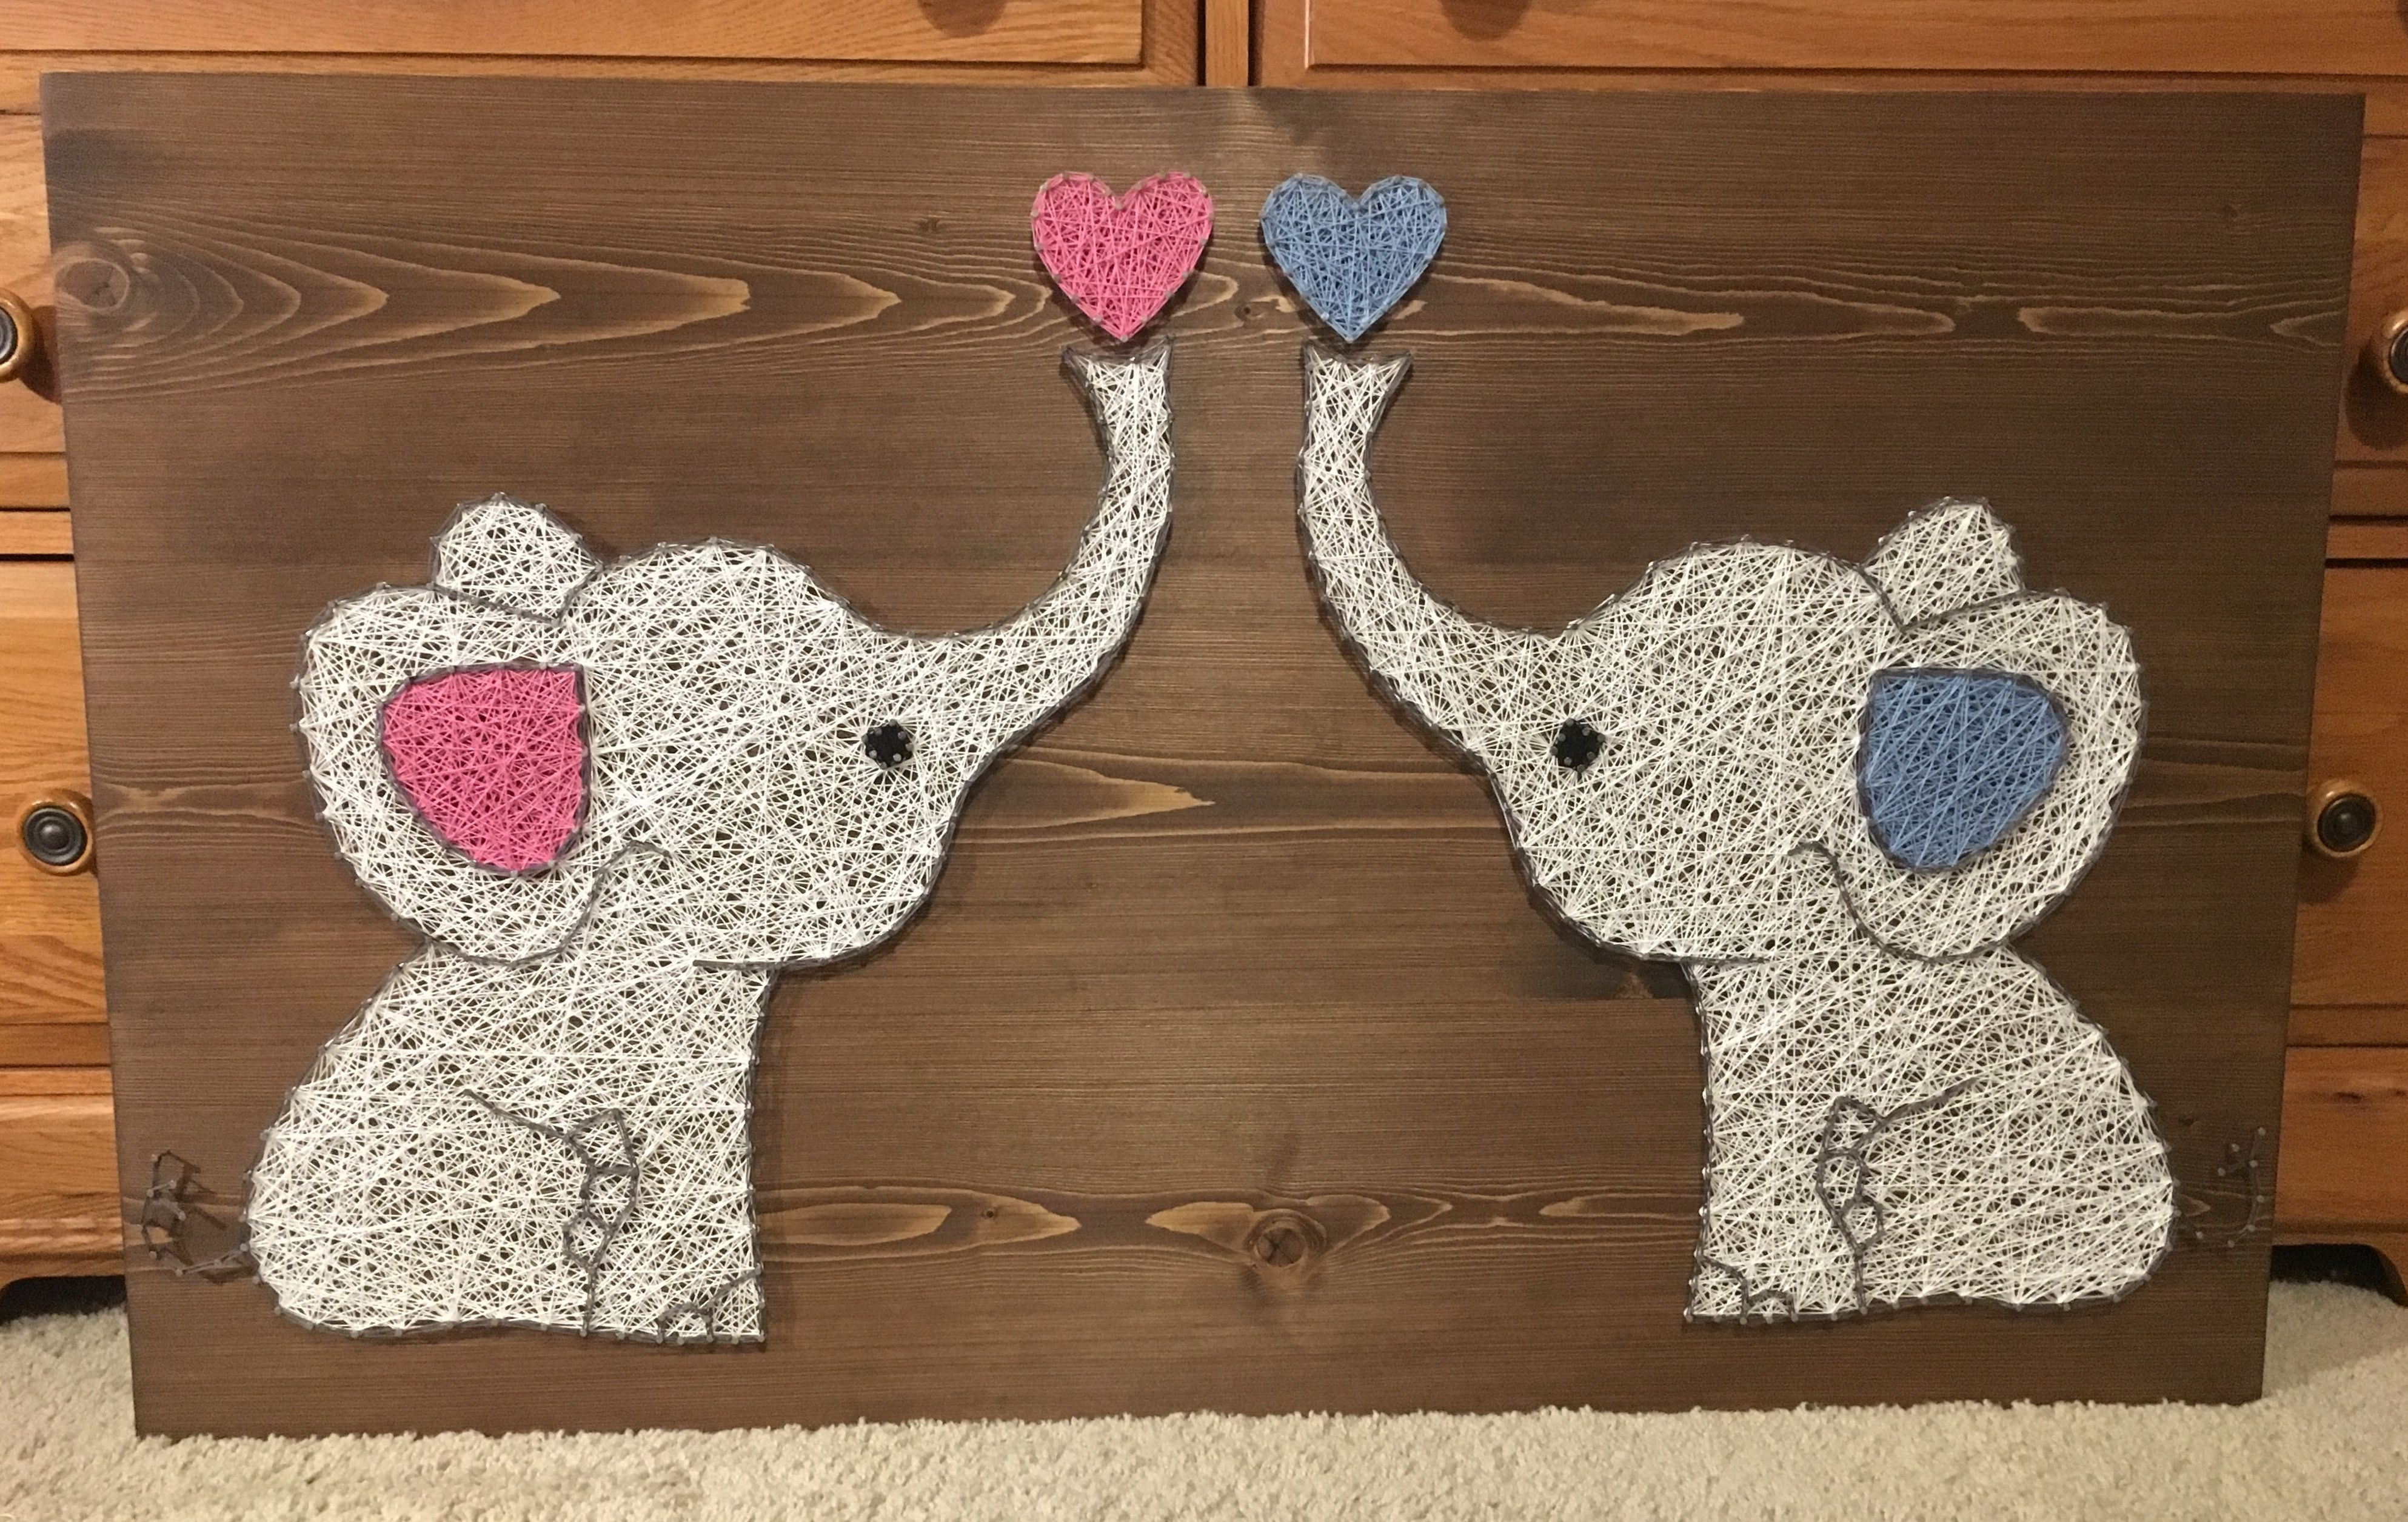 Personalized Unique Gift//Valentines Cute Elephants /& Baby Heart! Wooden Card